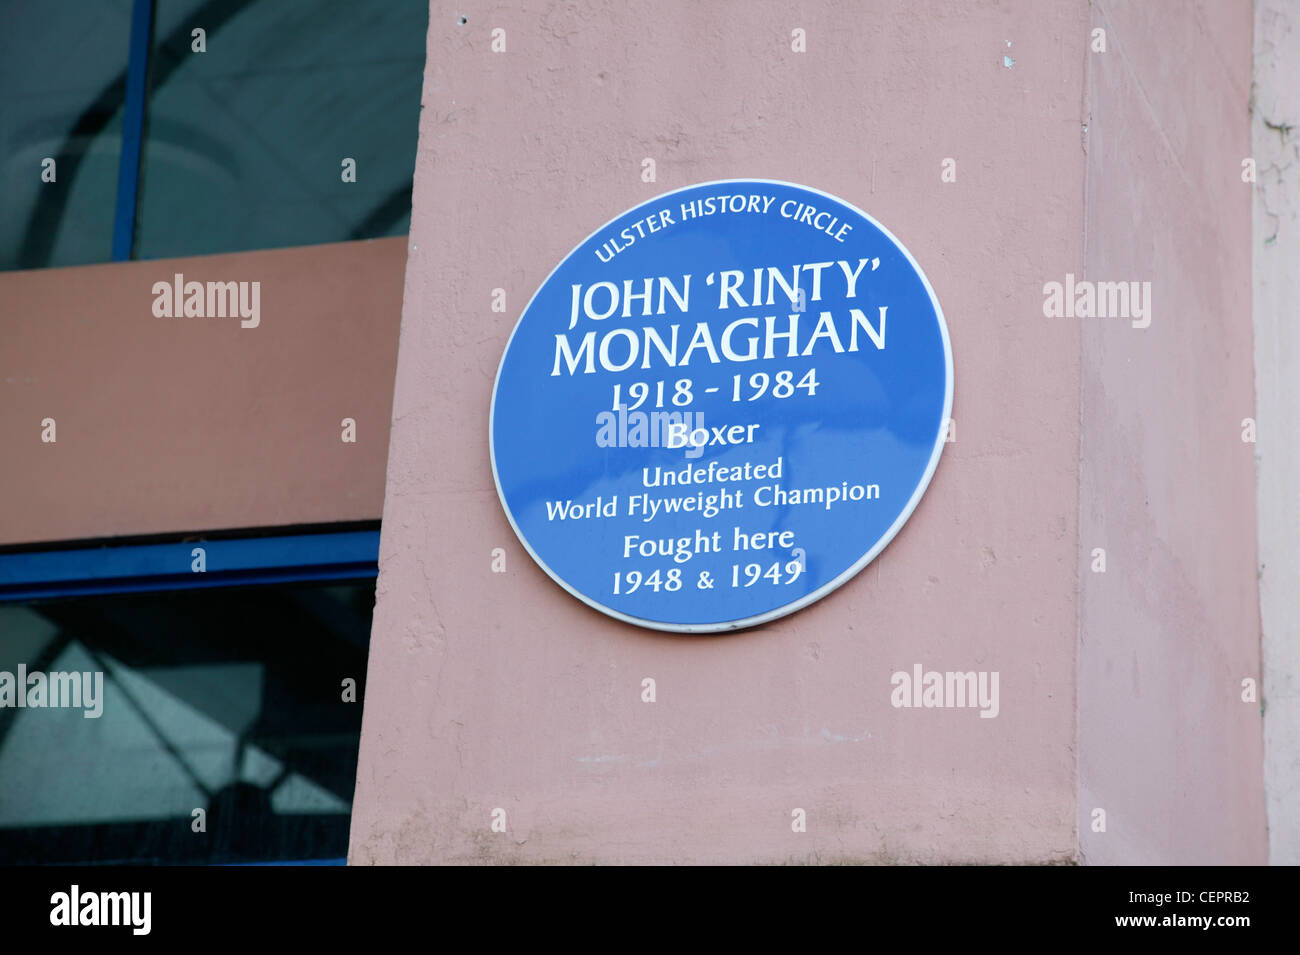 Close up of an Ulster History Circle commemorating the boxer John Monaghan. - Stock Image